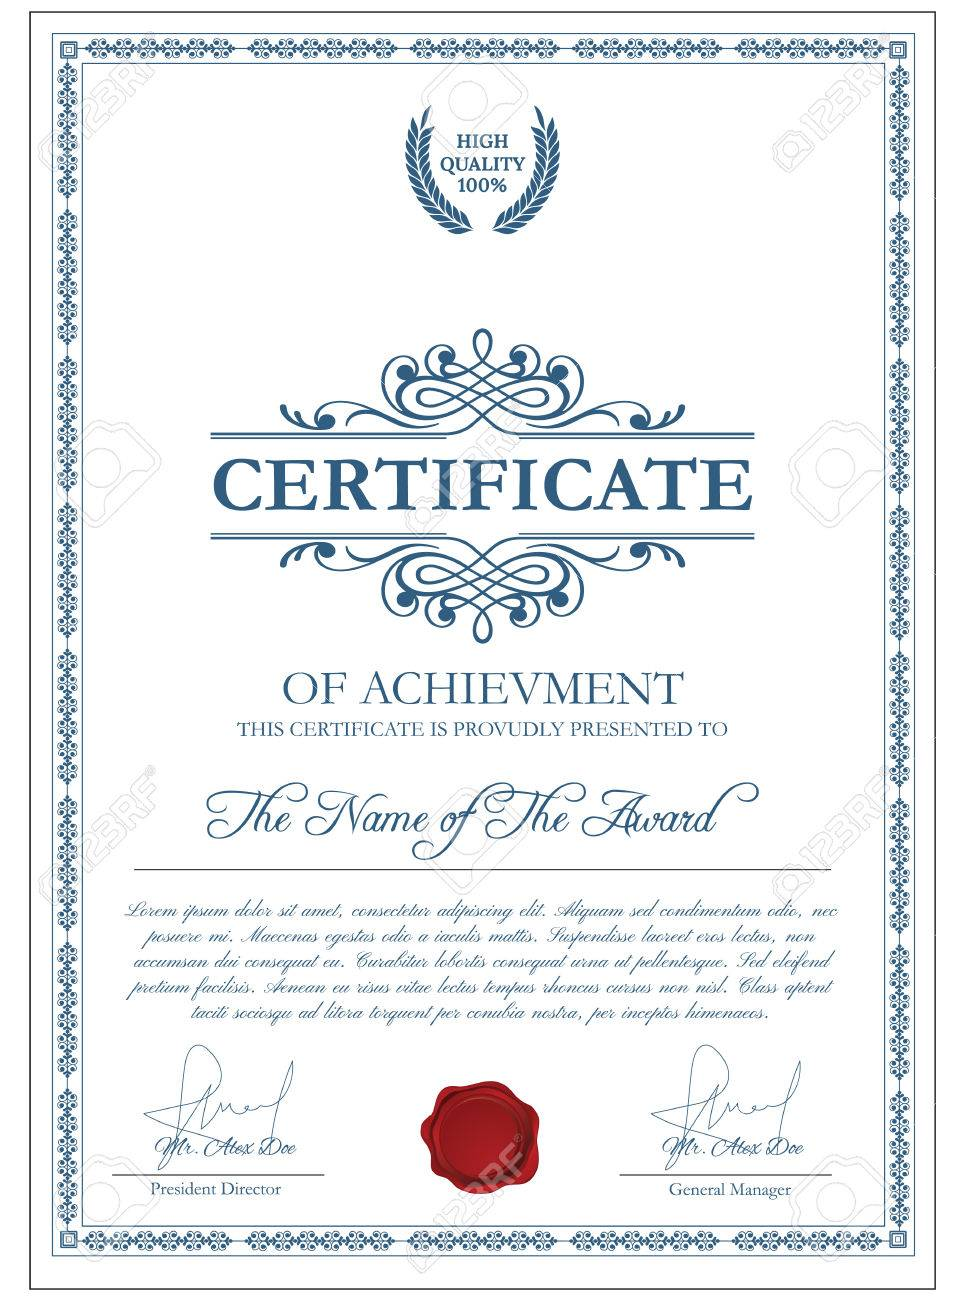 Share certificate template share certificate template word share share certificate template bill of free notice to vacate 56966857 certificate template with guilloche elements blue xflitez Choice Image